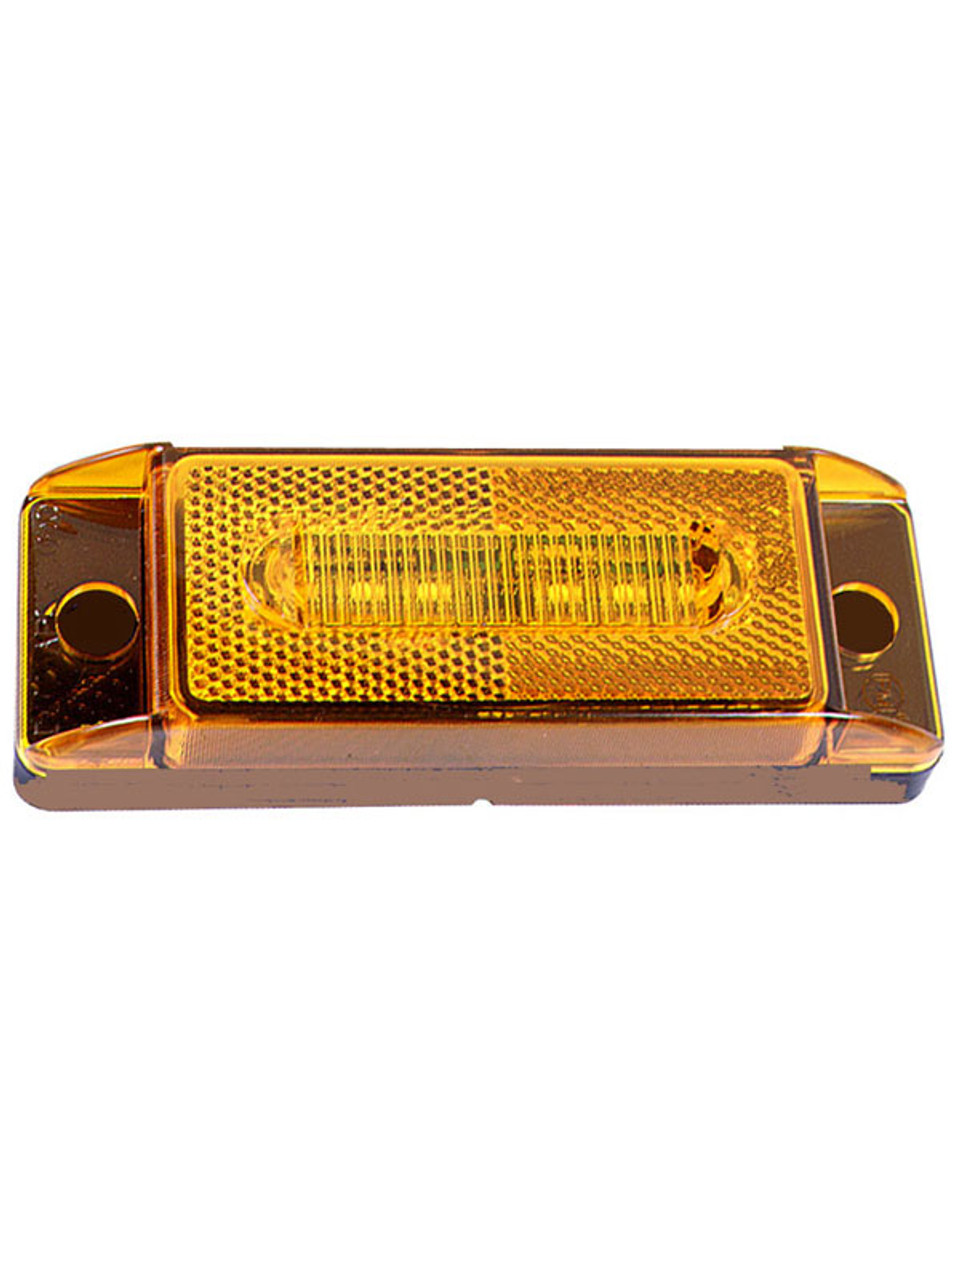 LED130KA4 --- Rectangular Sealed LED Clearance/Side Marker Light Kit - 4 Diodes